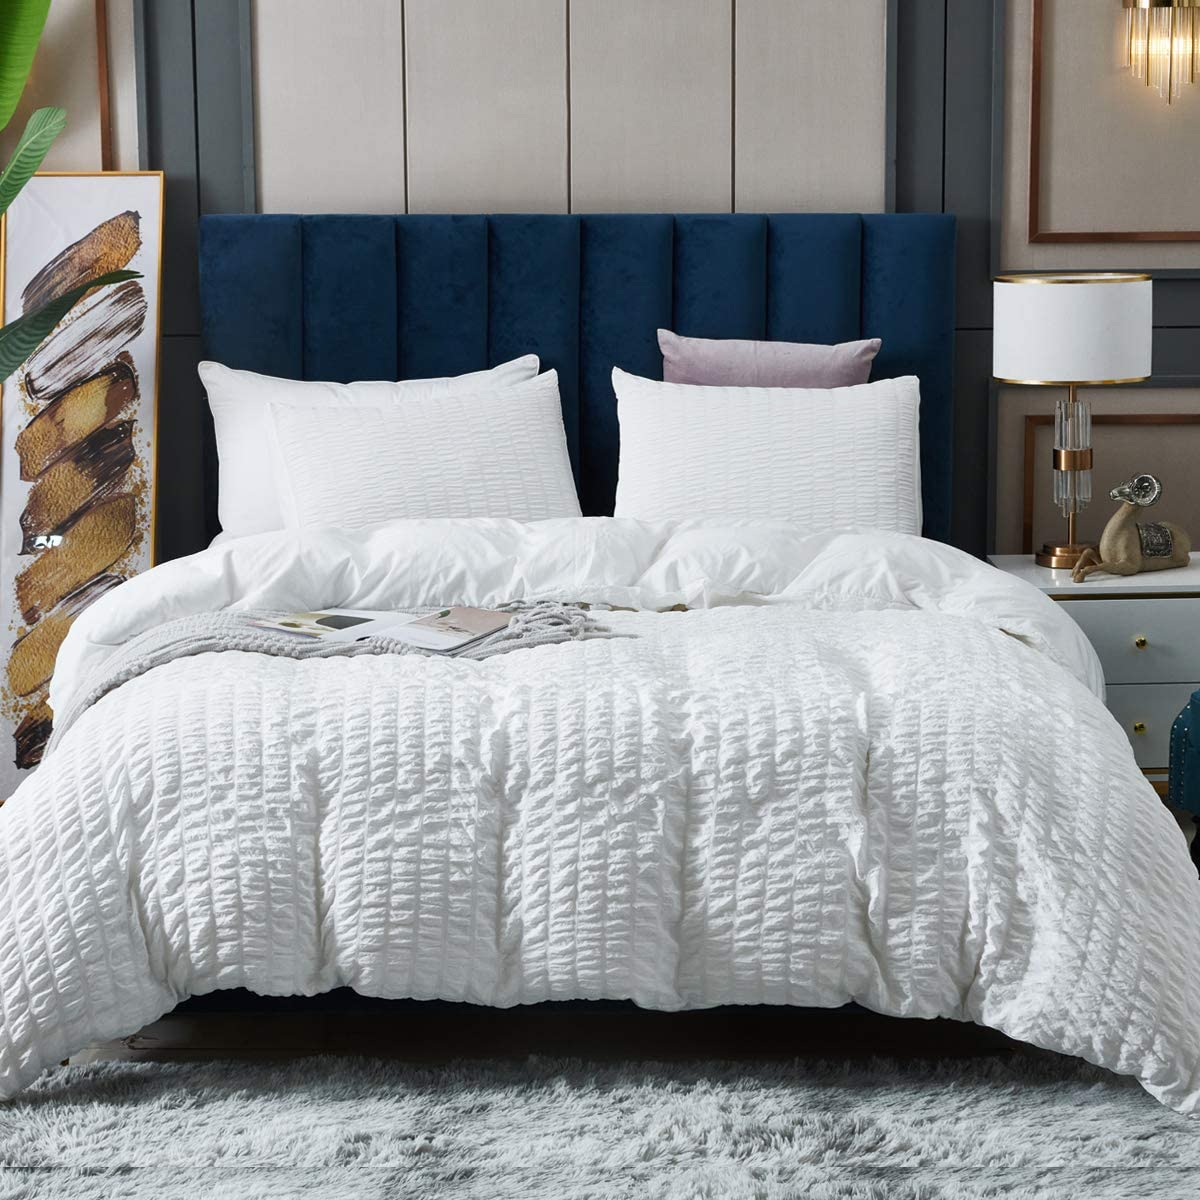 White Choice Seersucker Duvet Cover King Microfi Washed 100% Soft Max 71% OFF Size